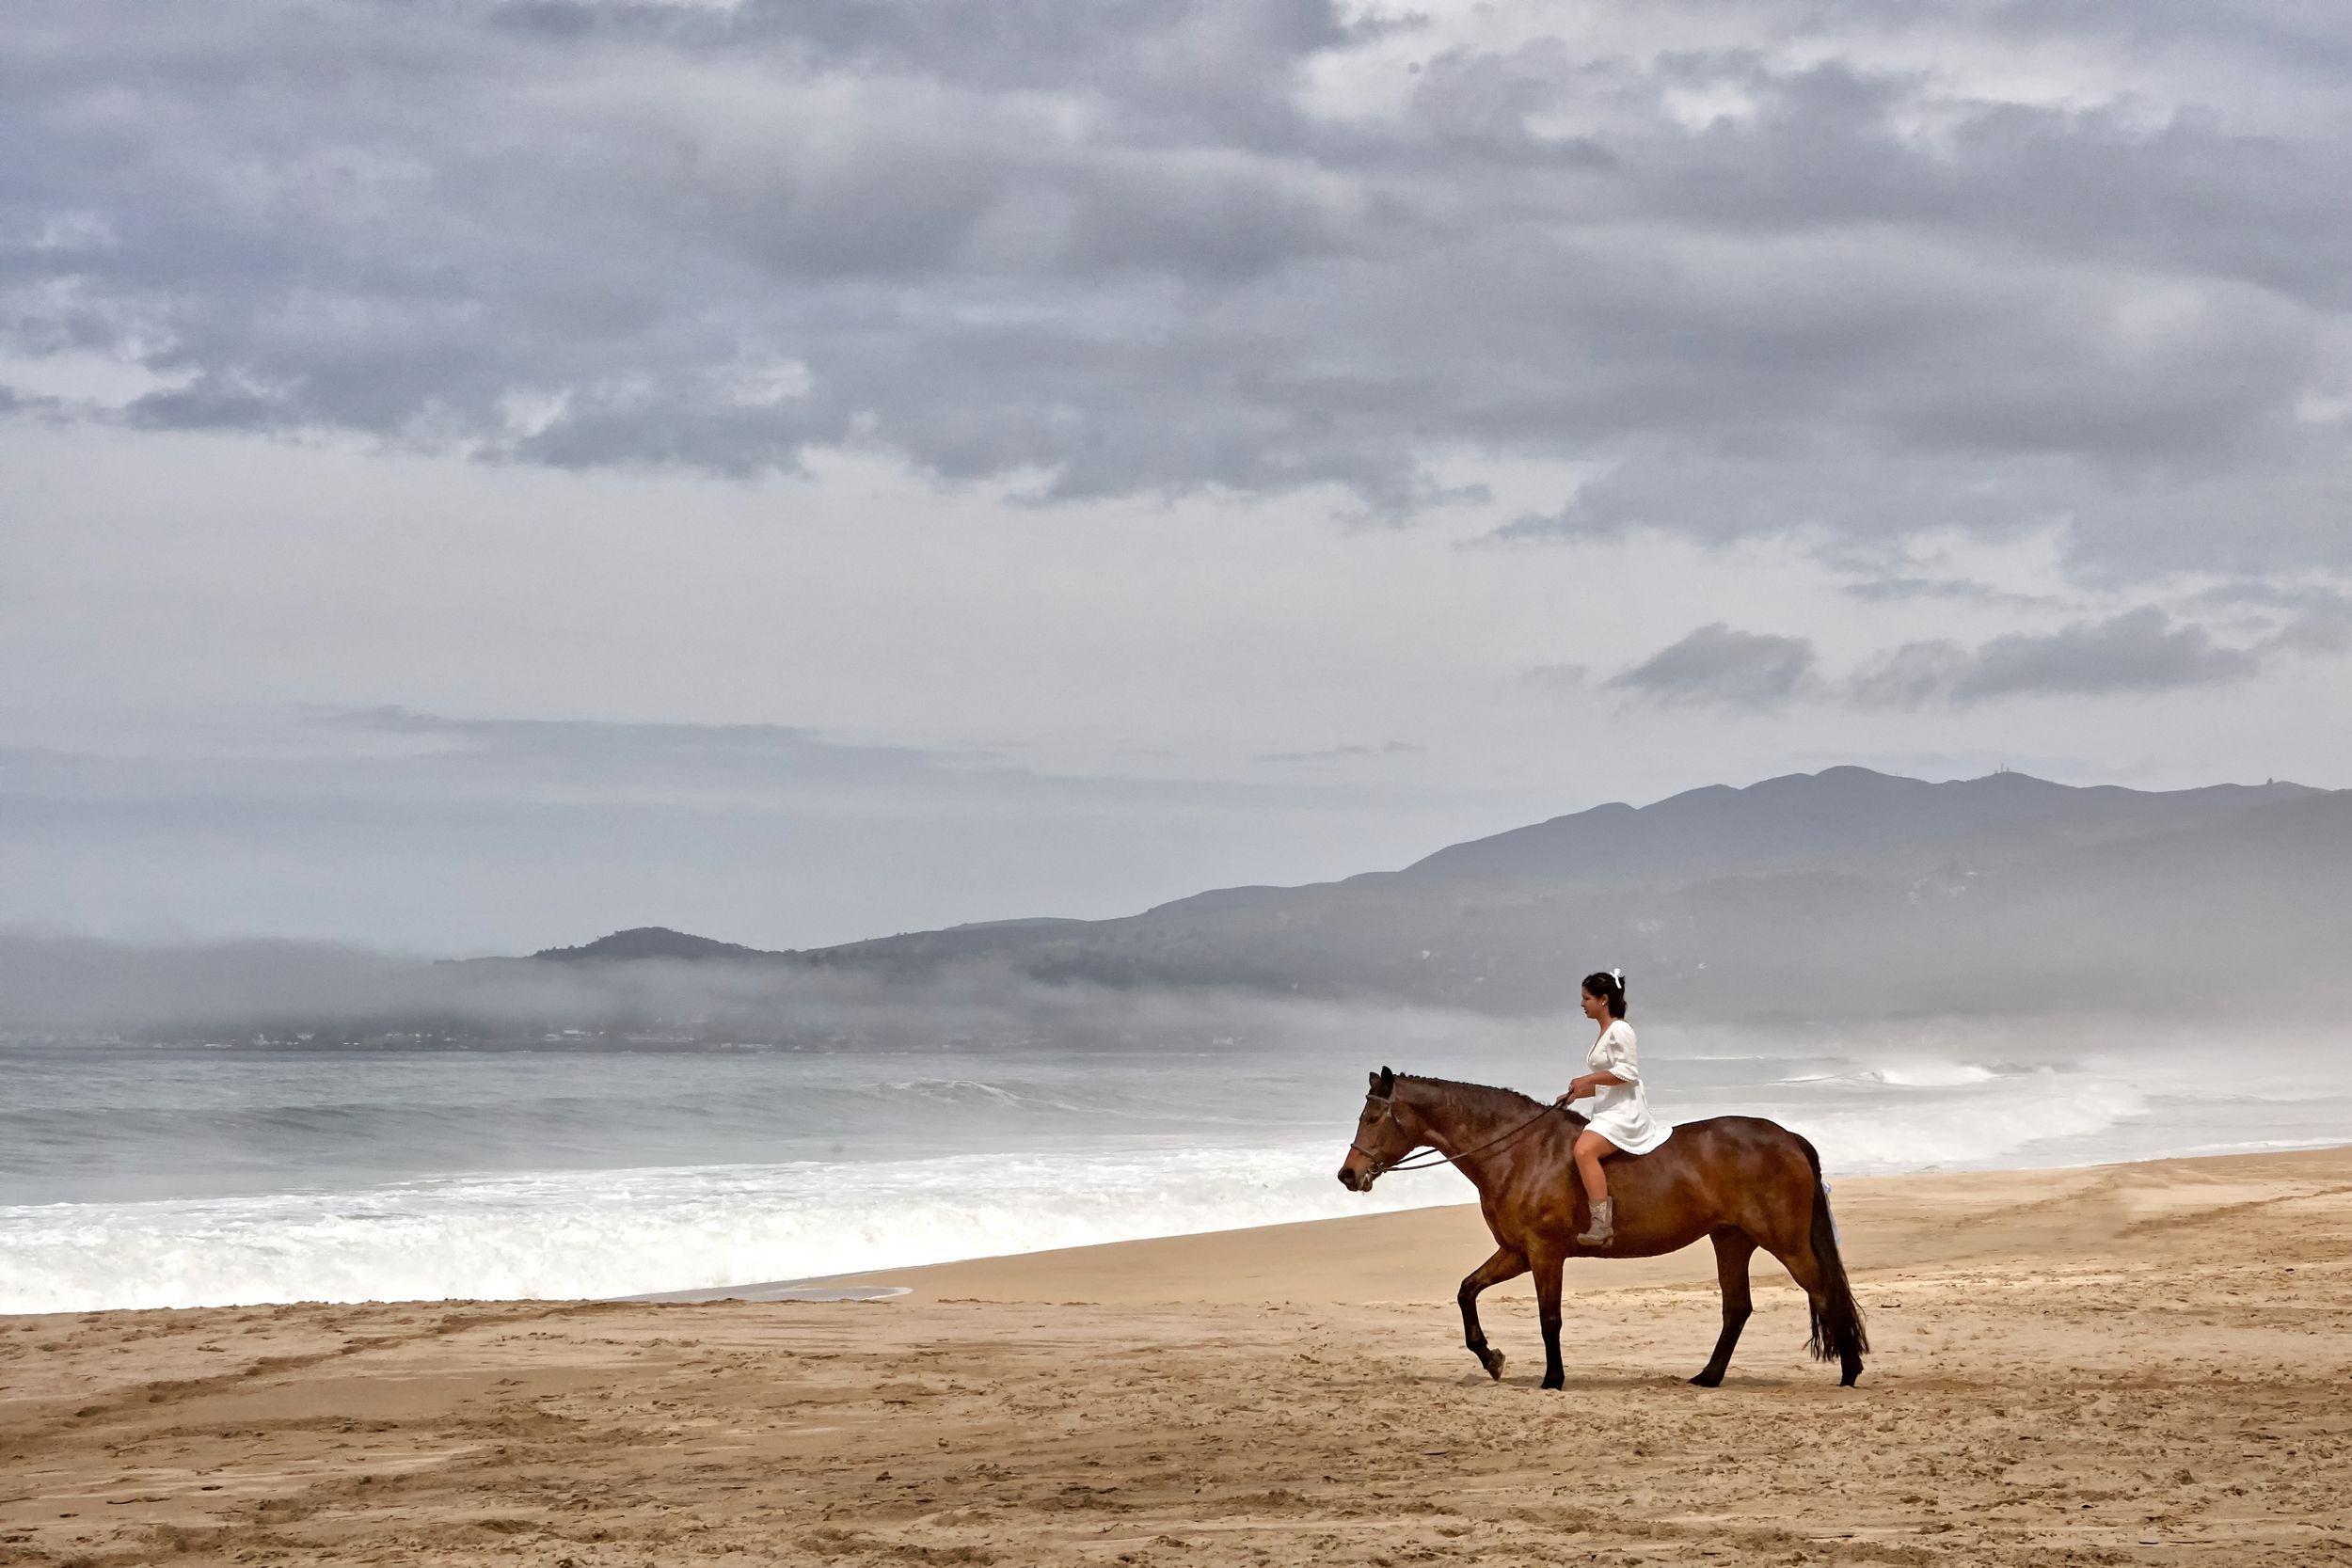 Foggy morning on the beach with a horse